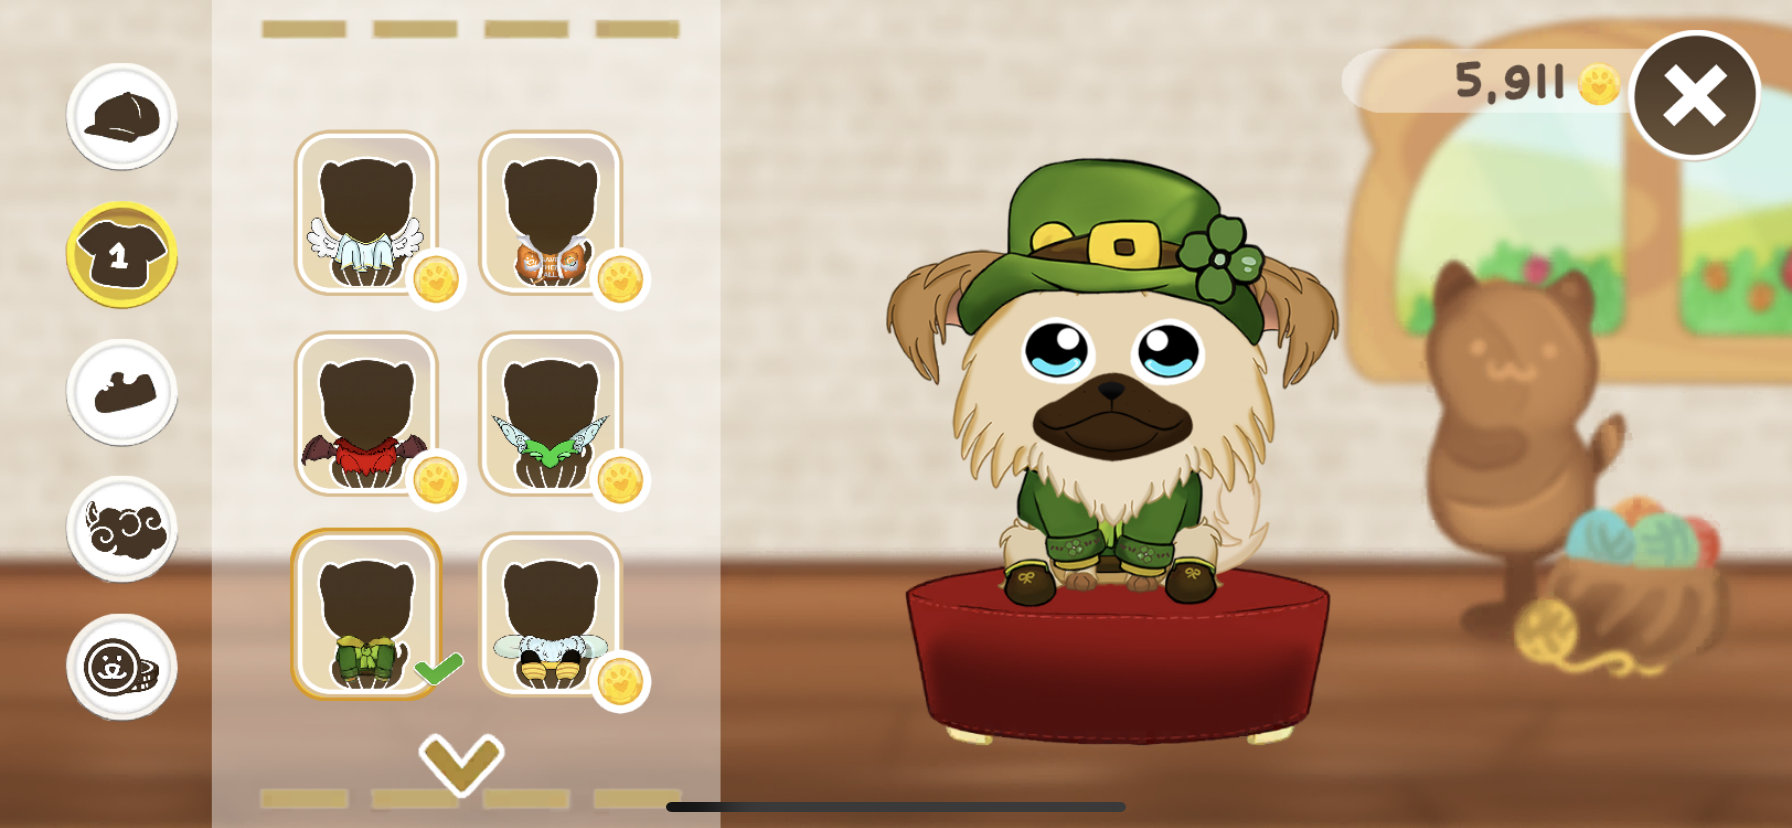 You can shop for outfits for your virtual pet!